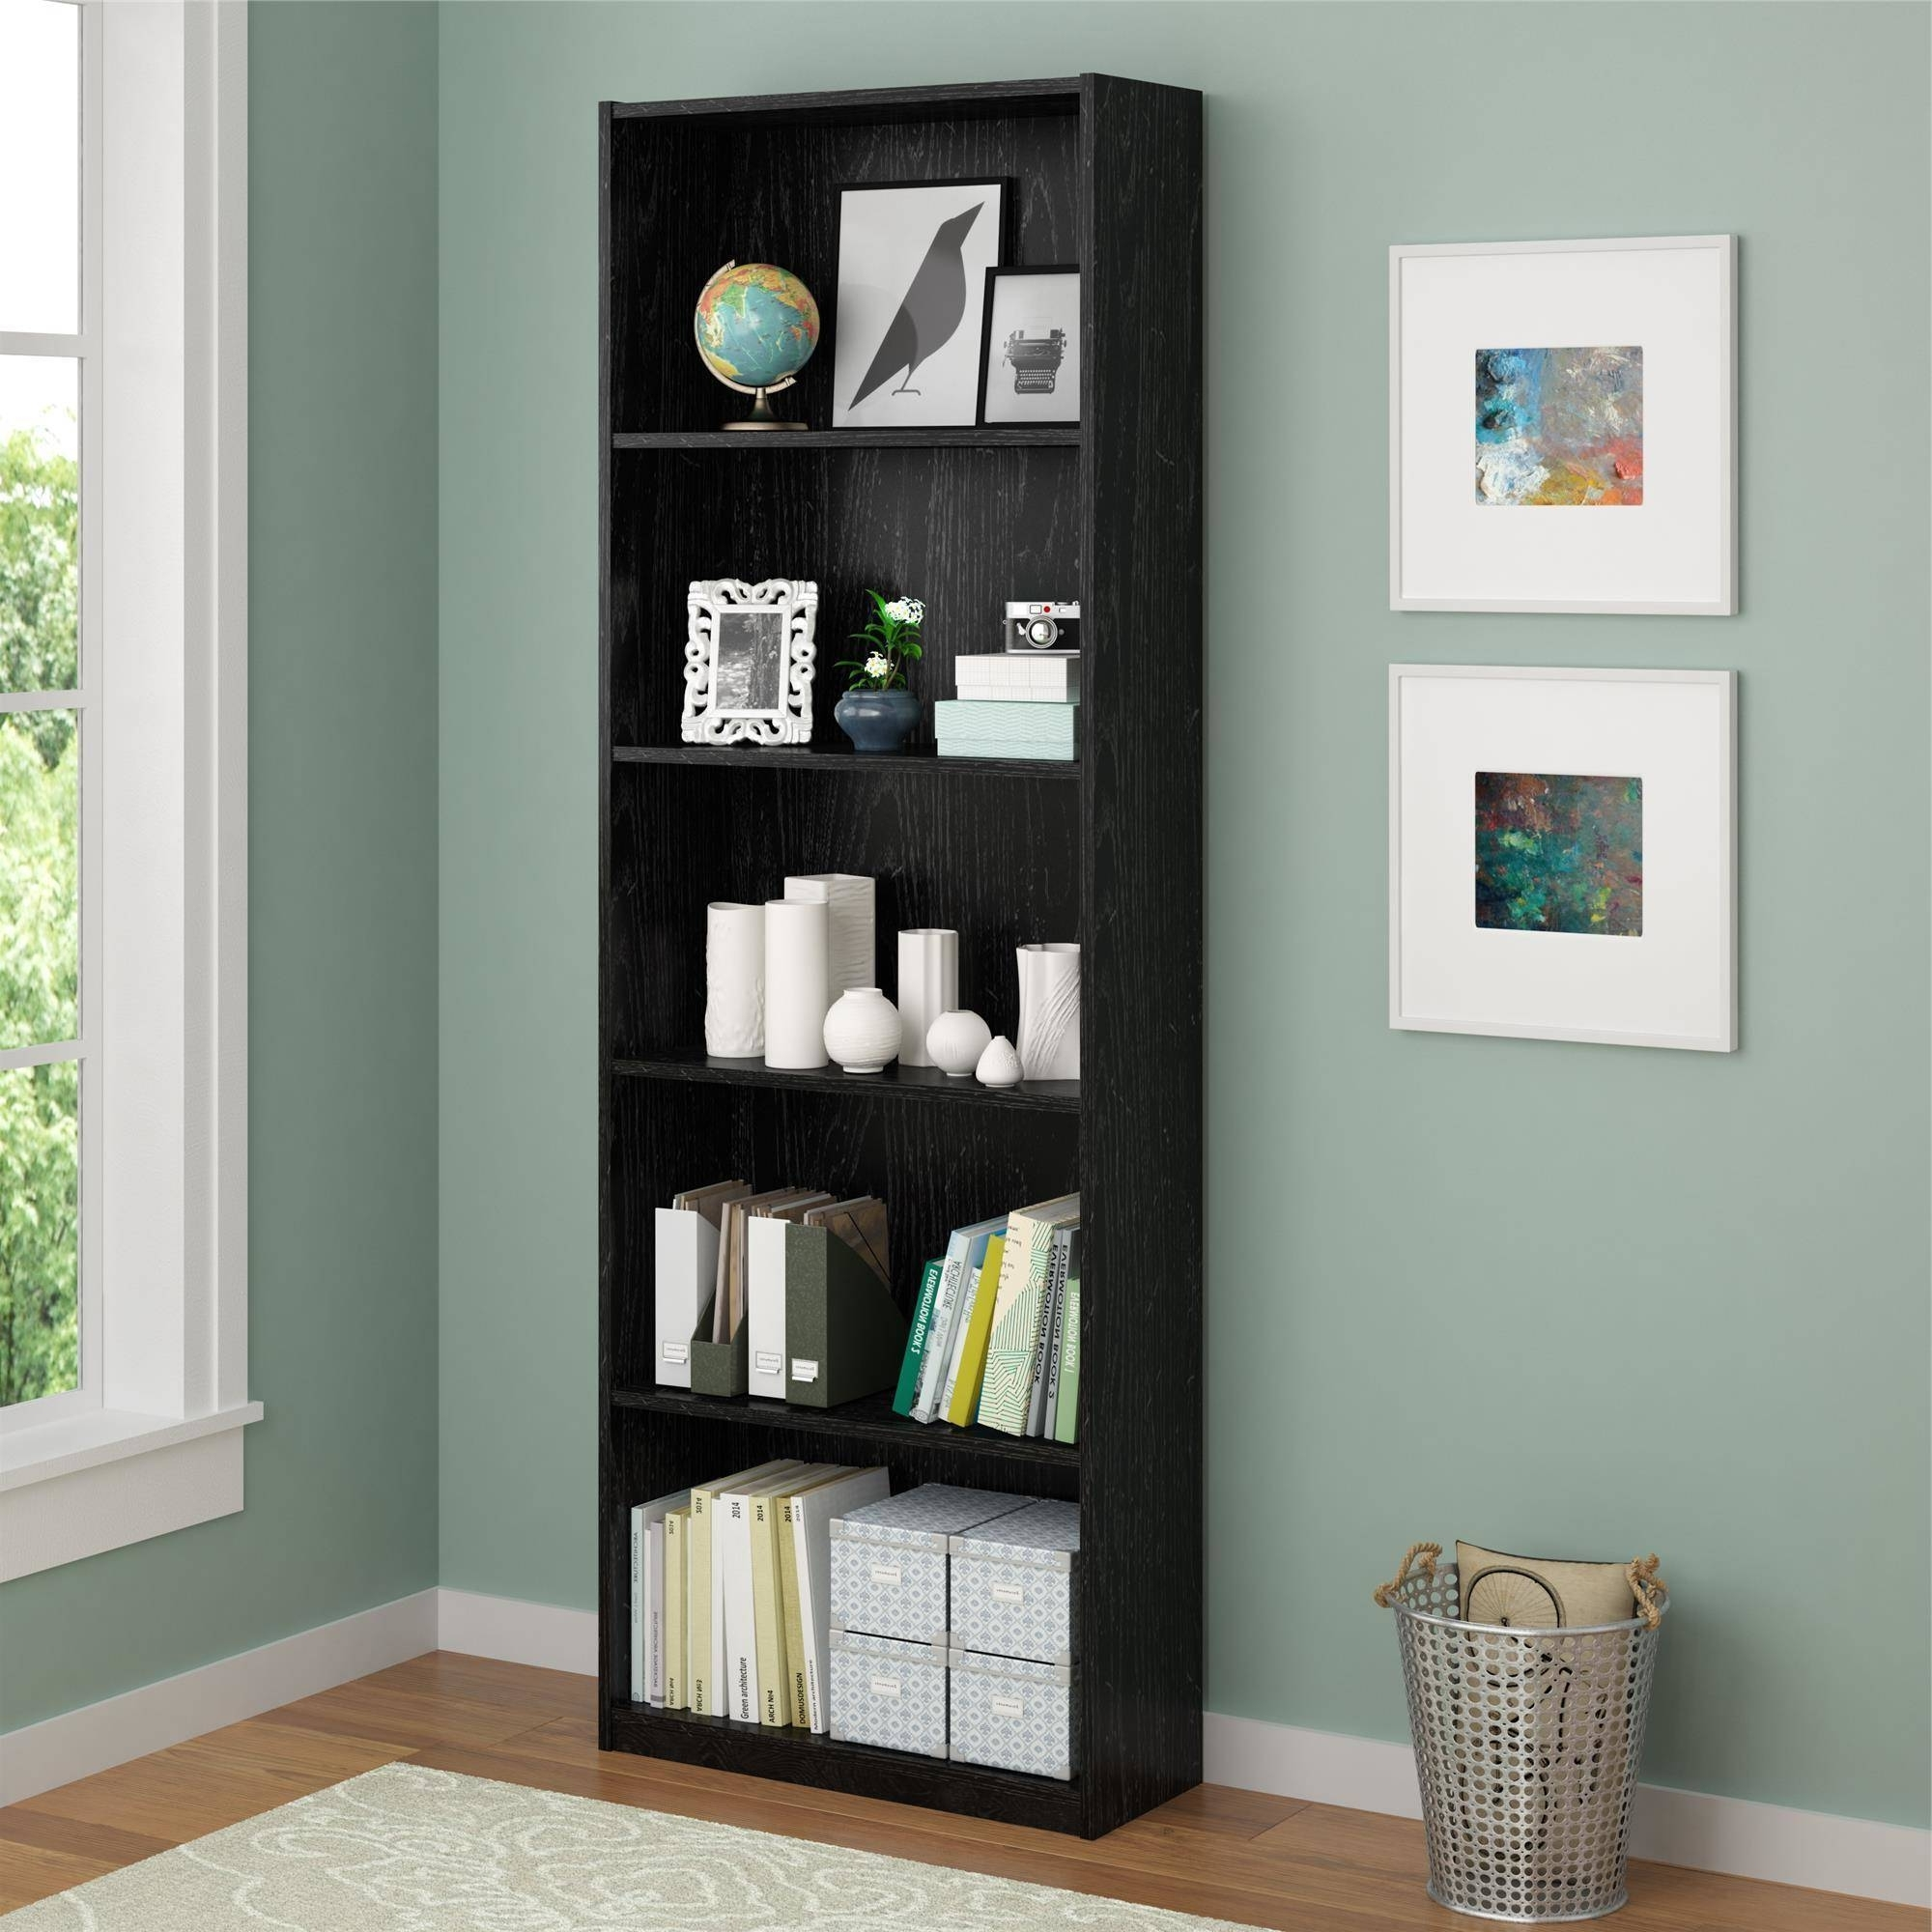 White Walmart Bookcases Within Trendy Ameriwood 5 Shelf Bookcase, Multiple Colors – Walmart (View 4 of 15)